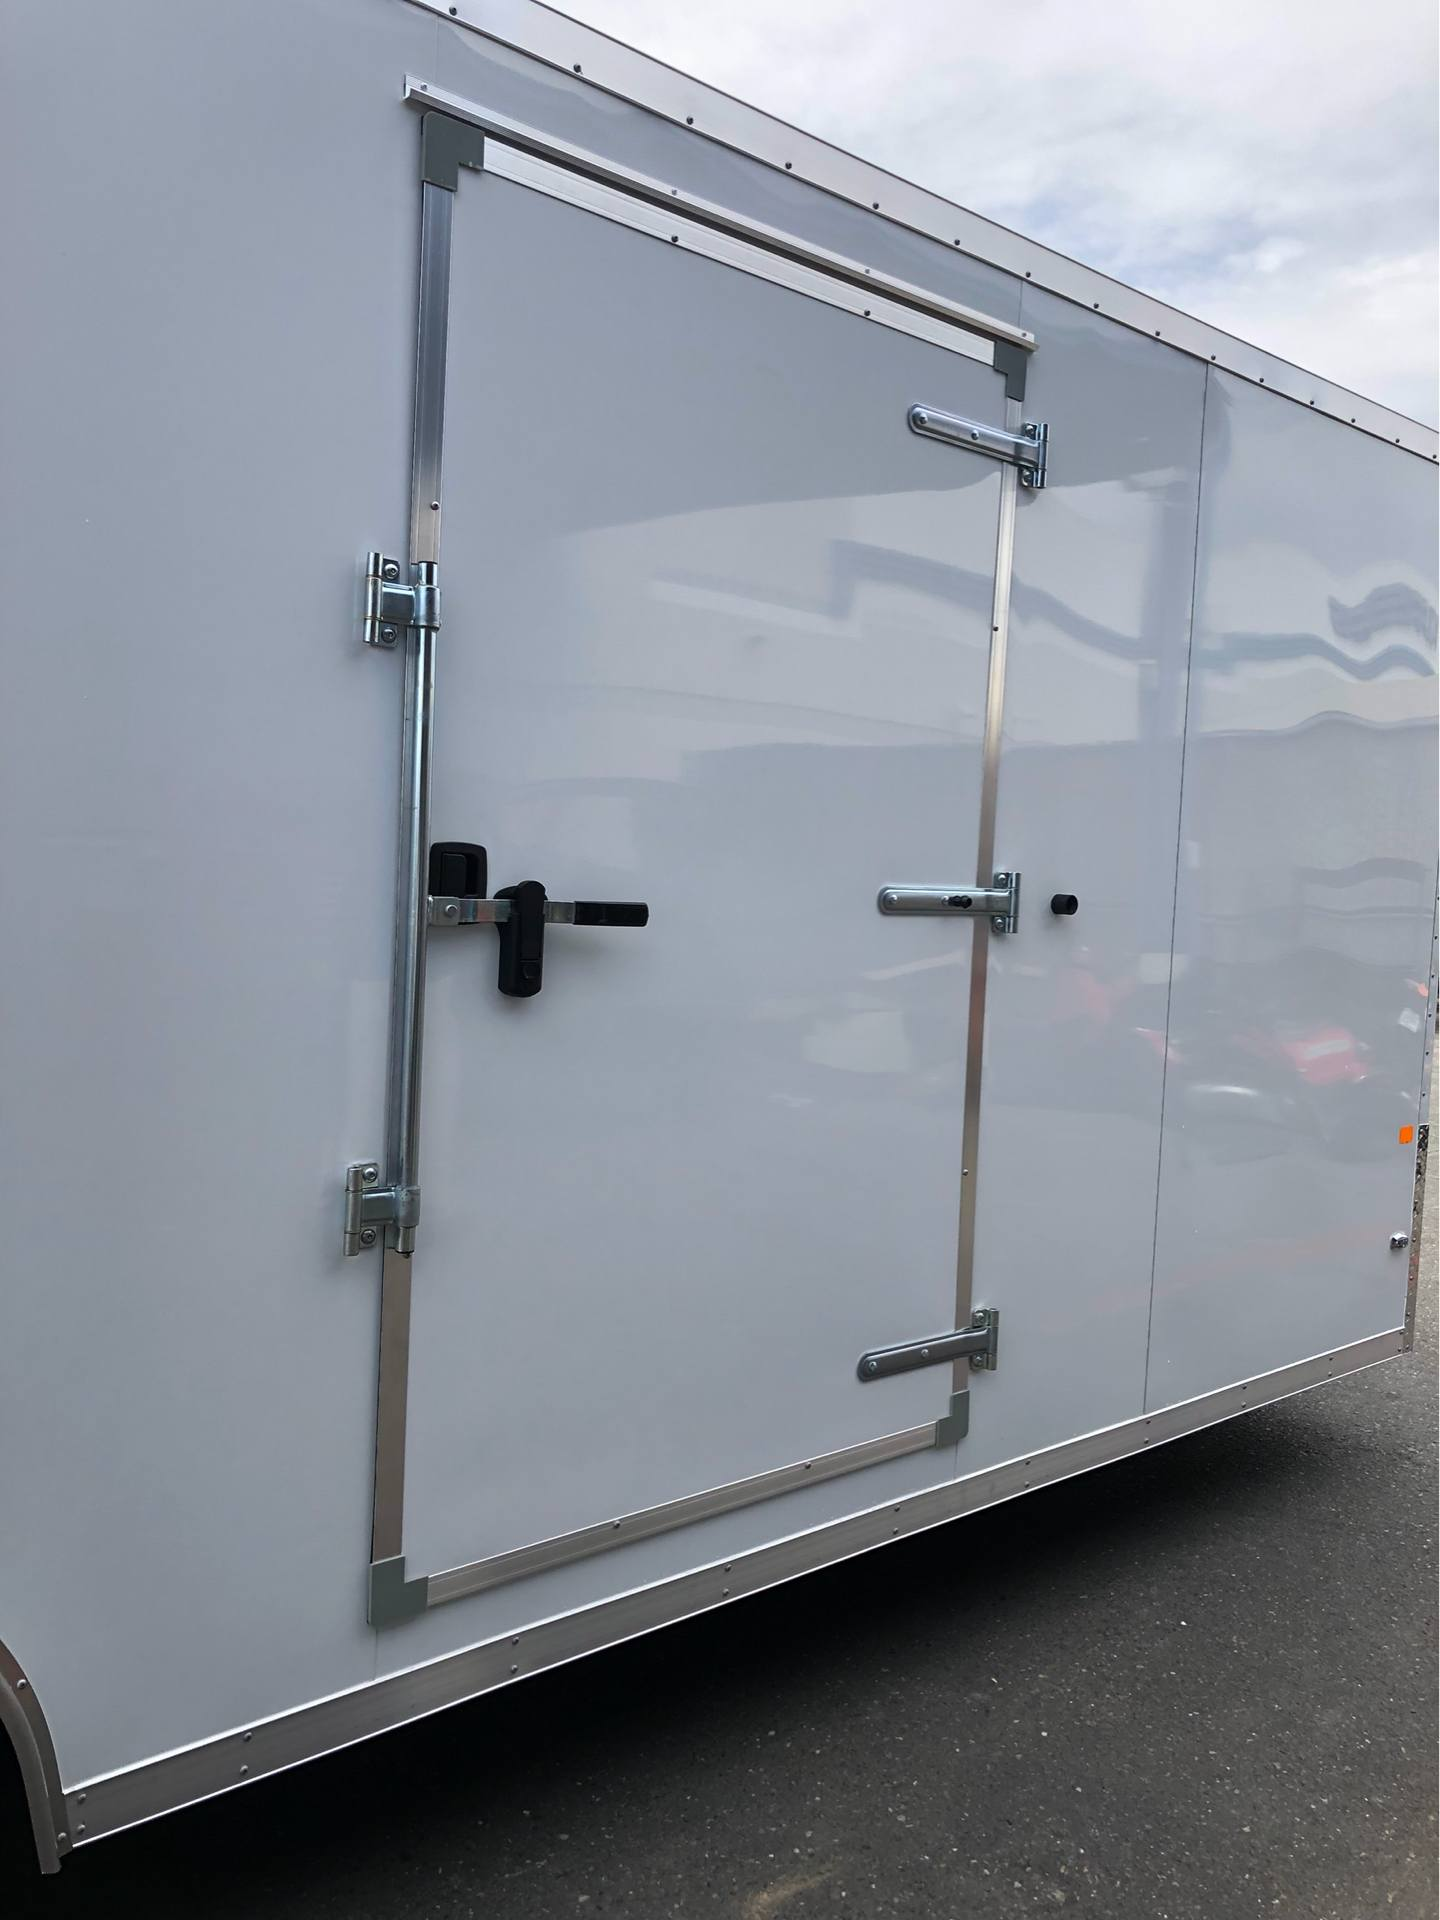 2020 Charmac Trailers 24' STEALTH CAR HAULER in Elk Grove, California - Photo 4